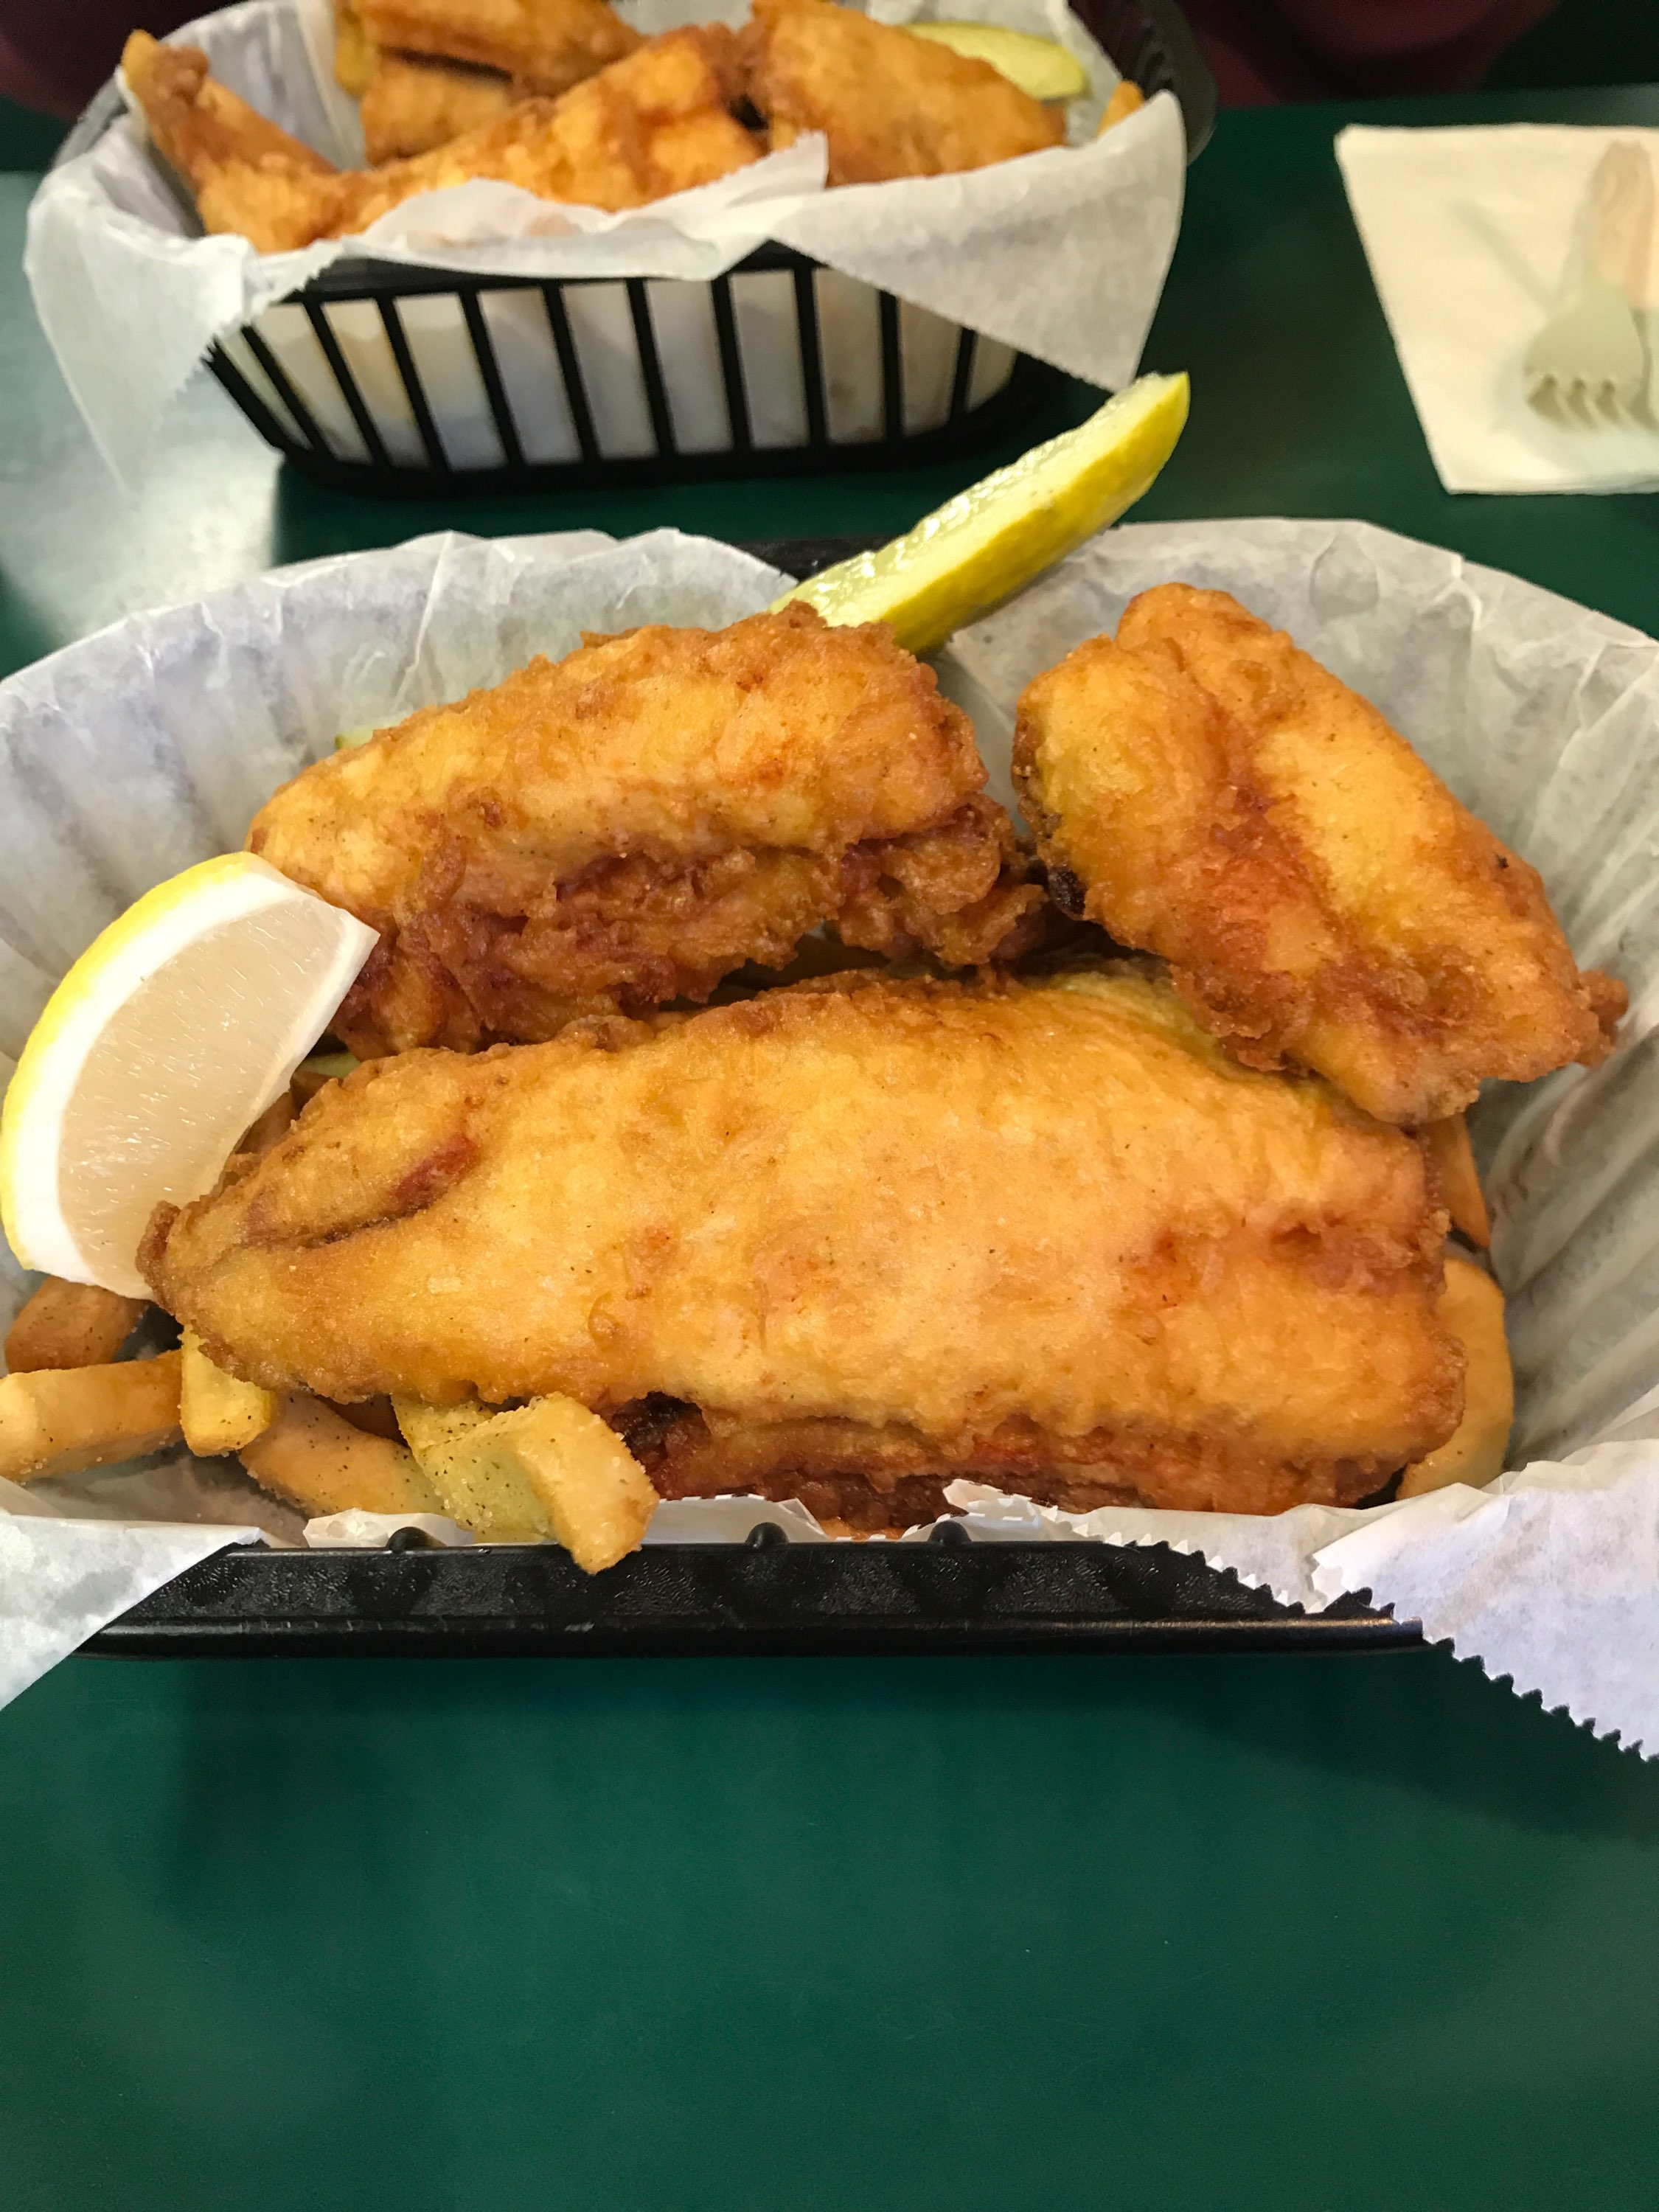 Basket of fried whitefish with lemon wedge and pickle.